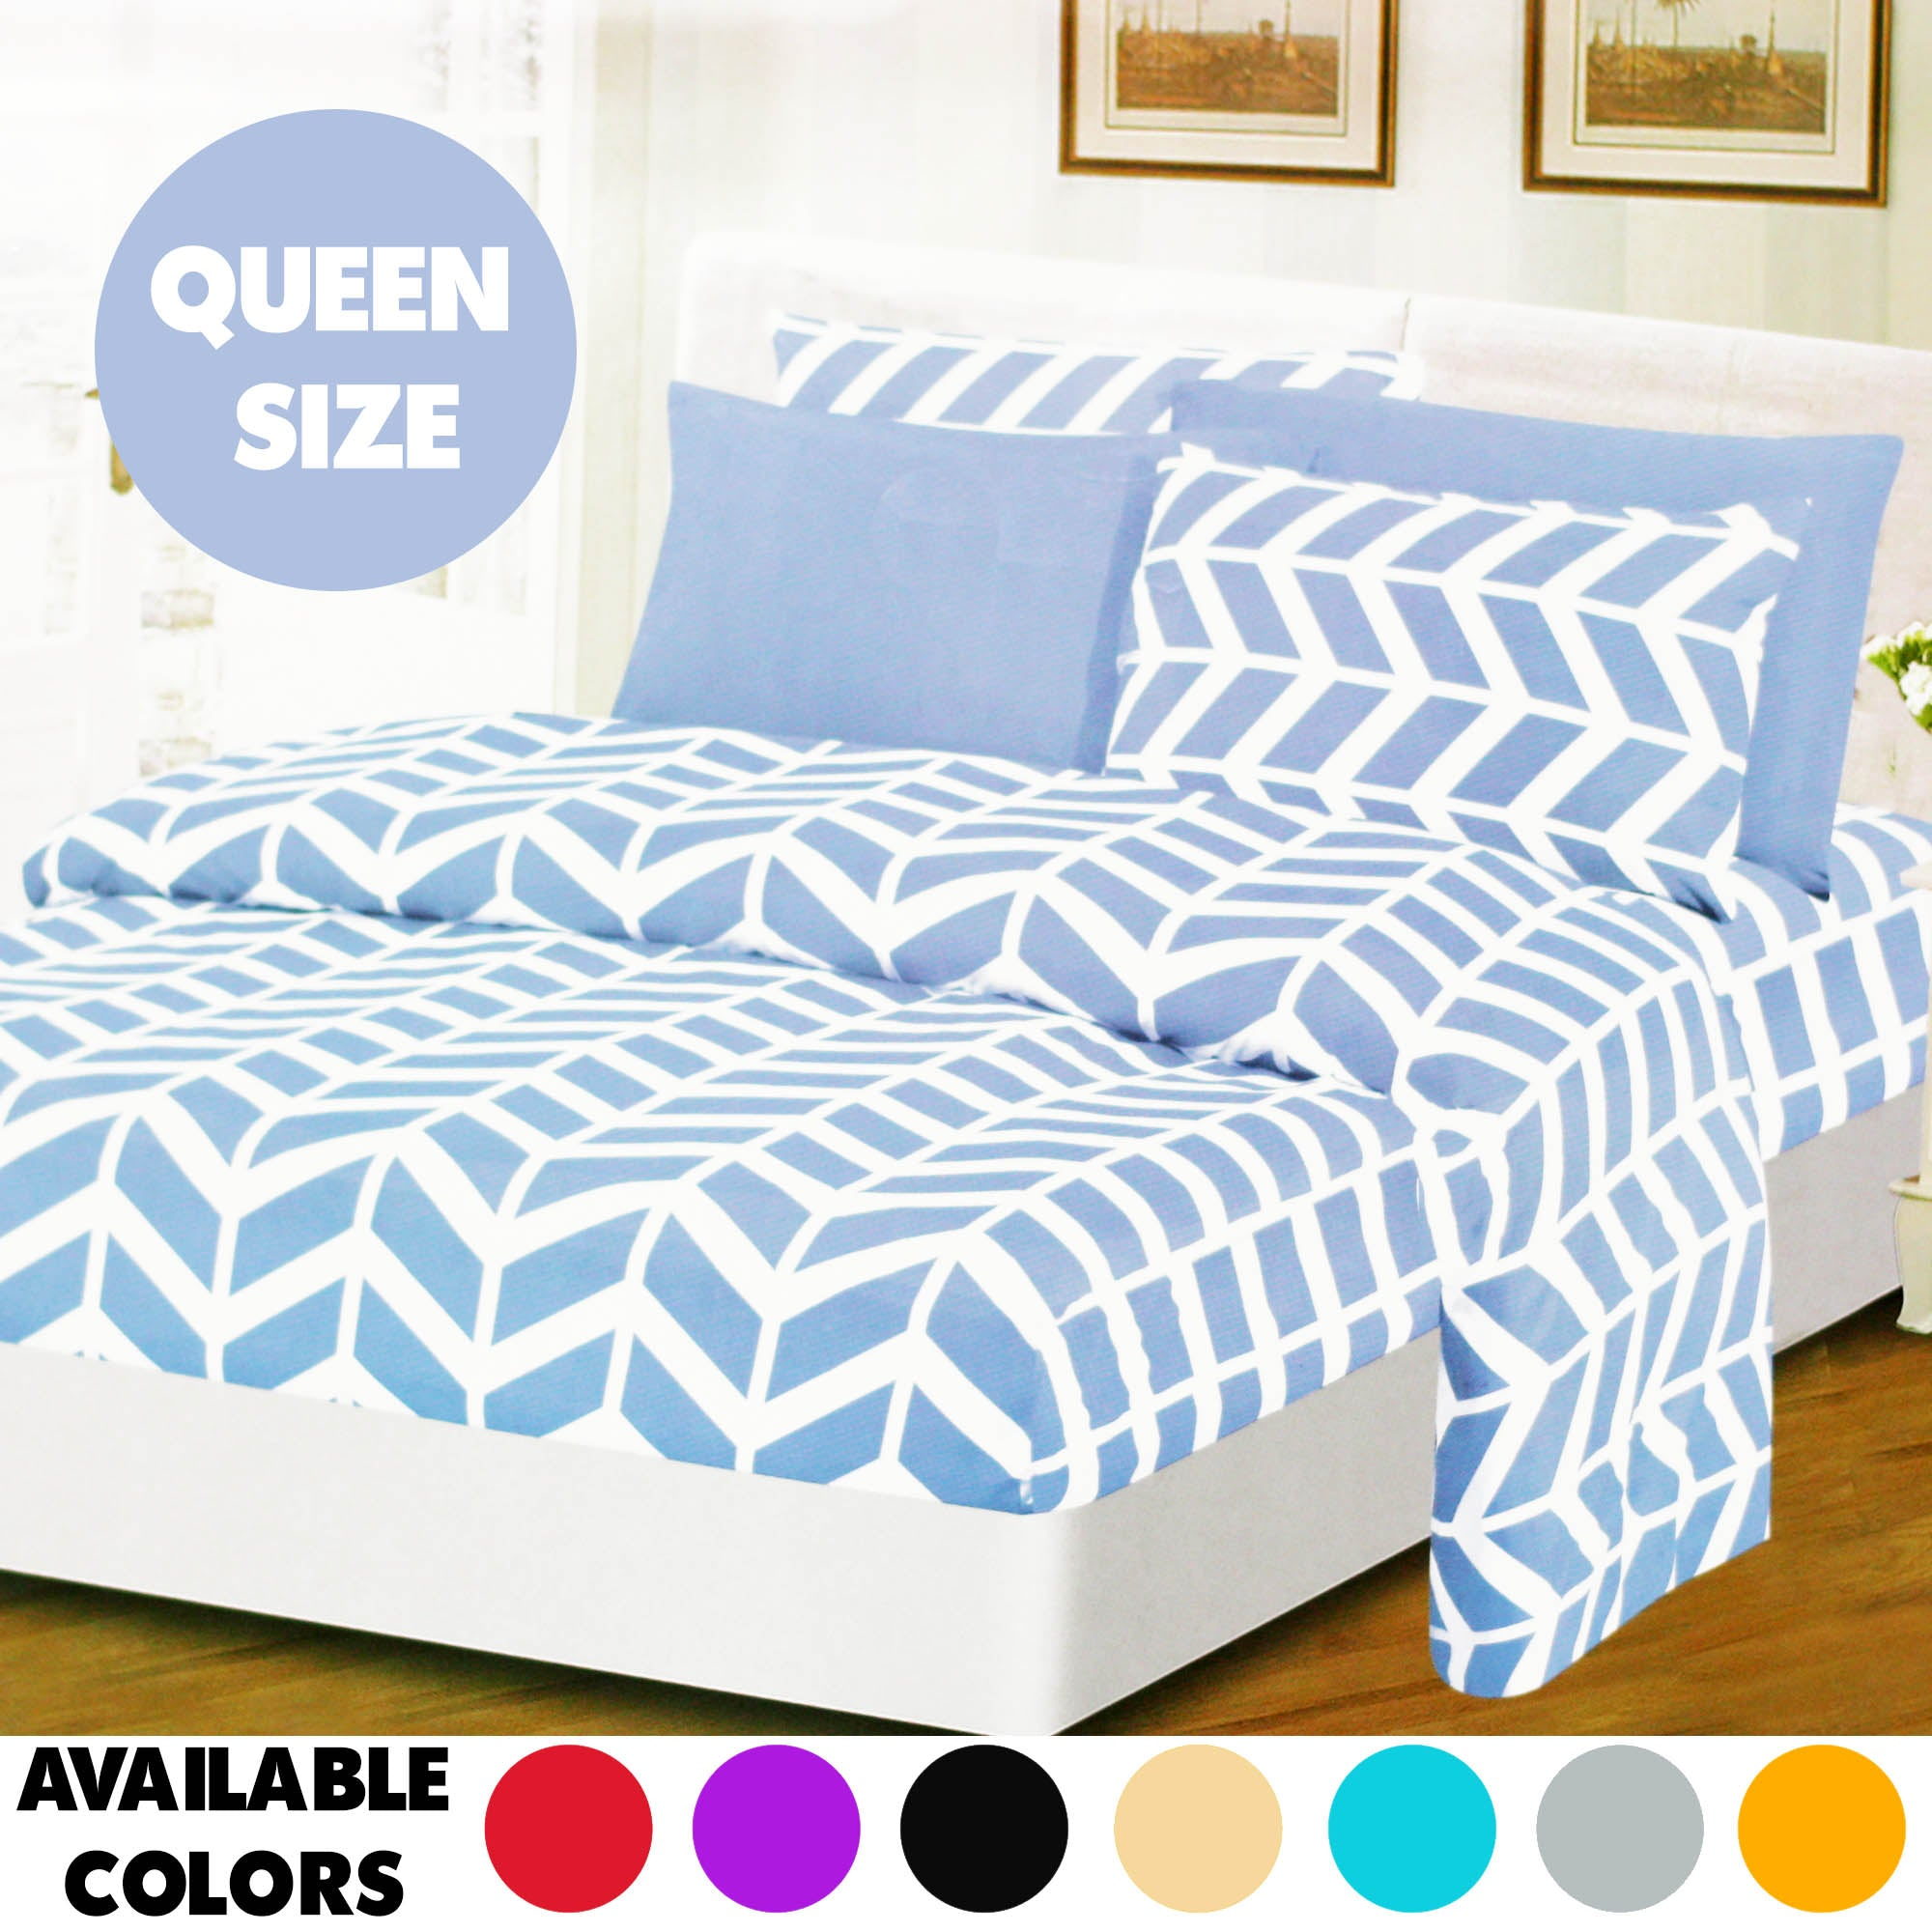 Queen Size Beed Sheet (6 Pcs)